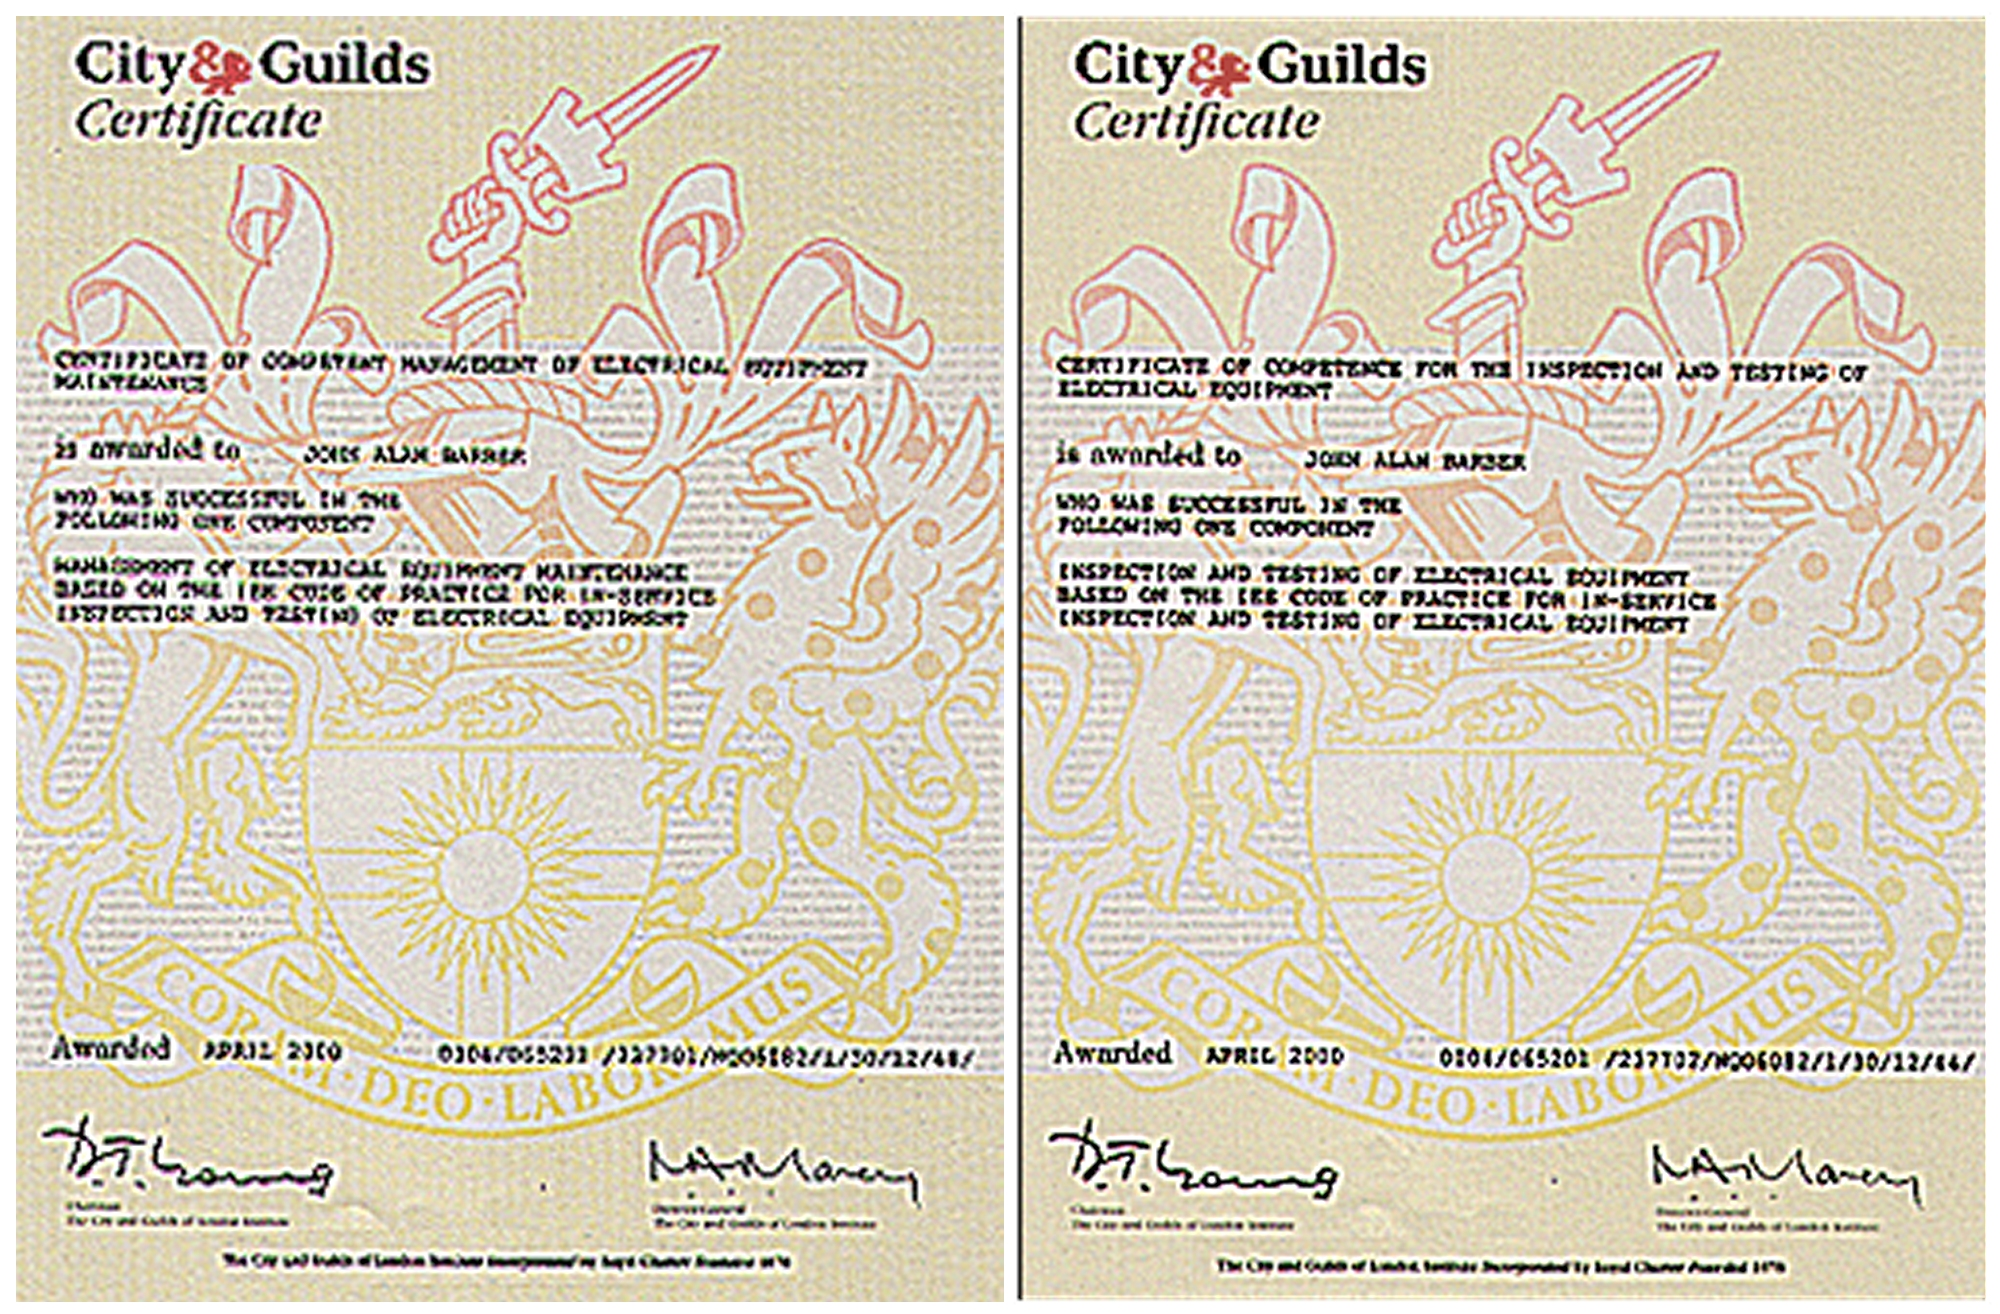 Home guilds 237701 certificate of competent management of electrical equipment and city guilds 237702 certificate of competence for the inspection of yadclub Images